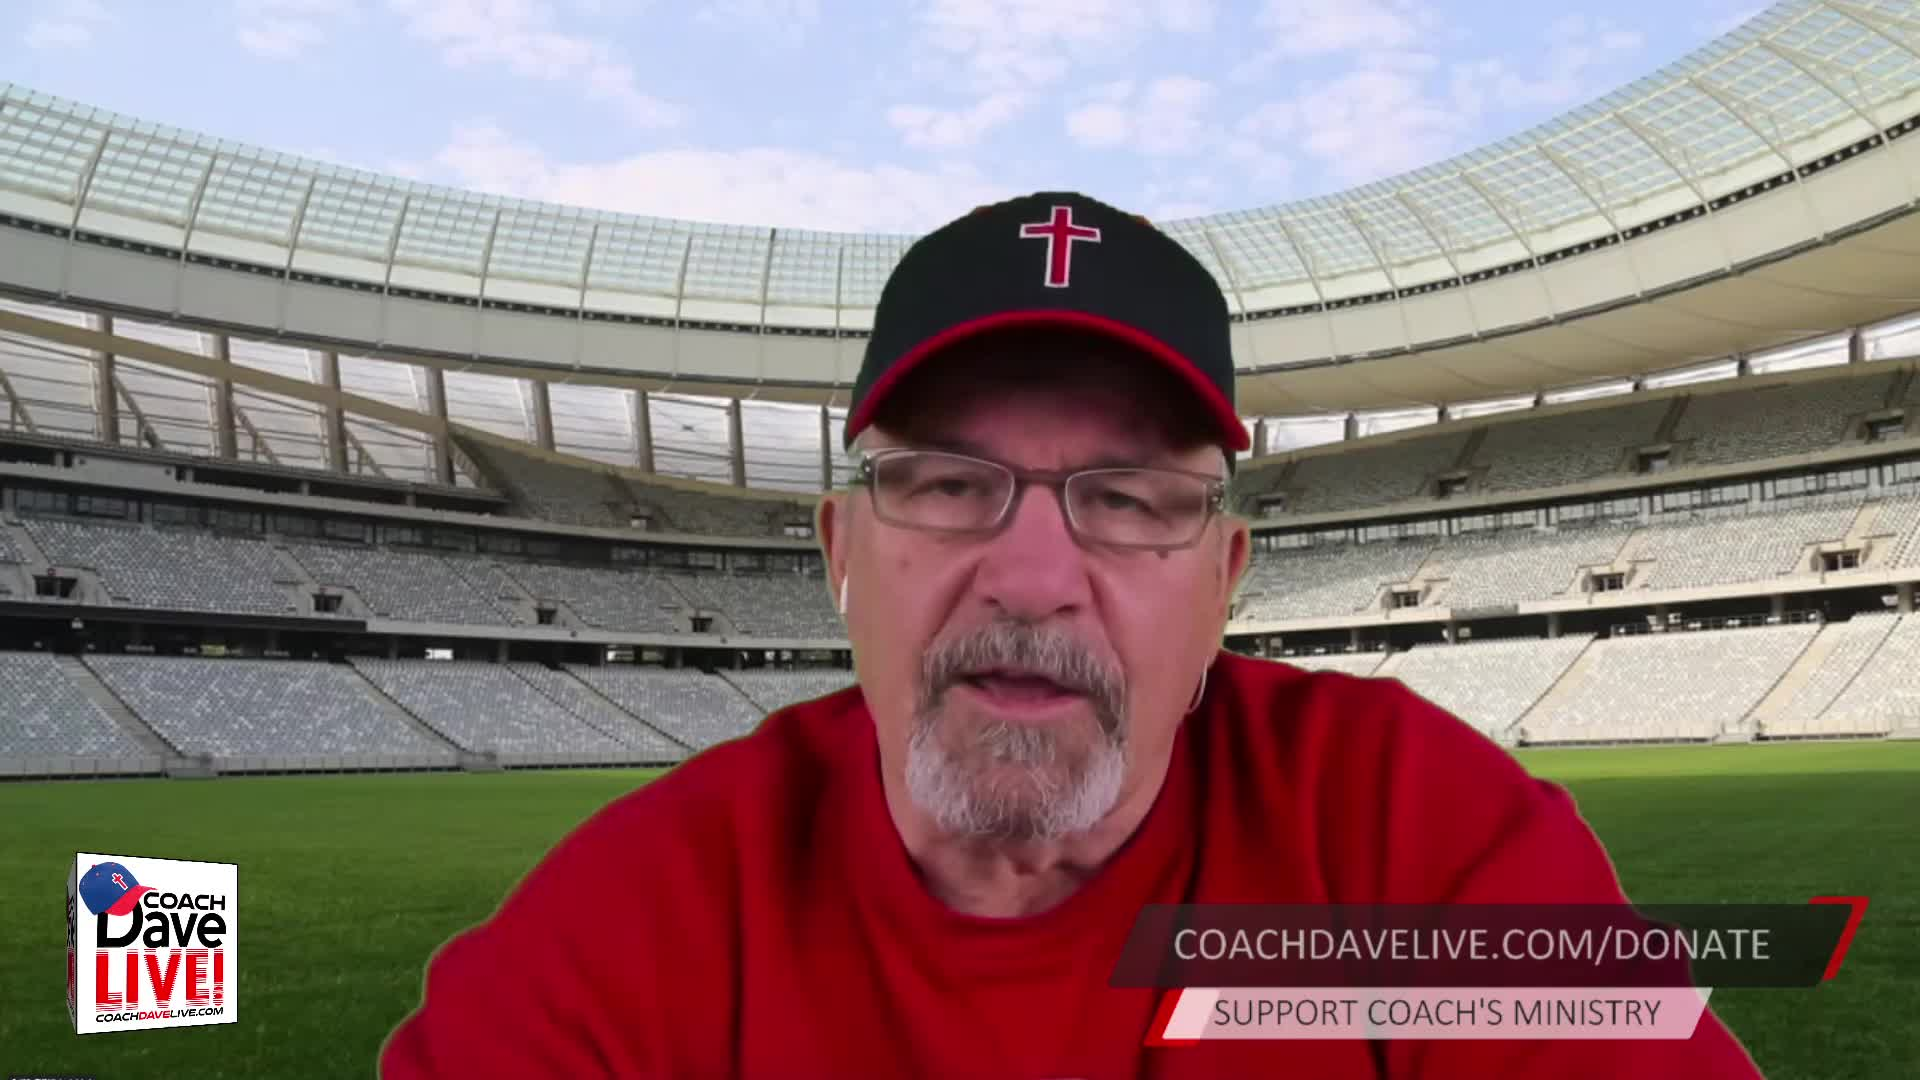 Coach Dave LIVE | 3-15-2021 | JESUS TOLD PETER THAT HE HAD TO BE CONVERTED - AUDIO ONLY